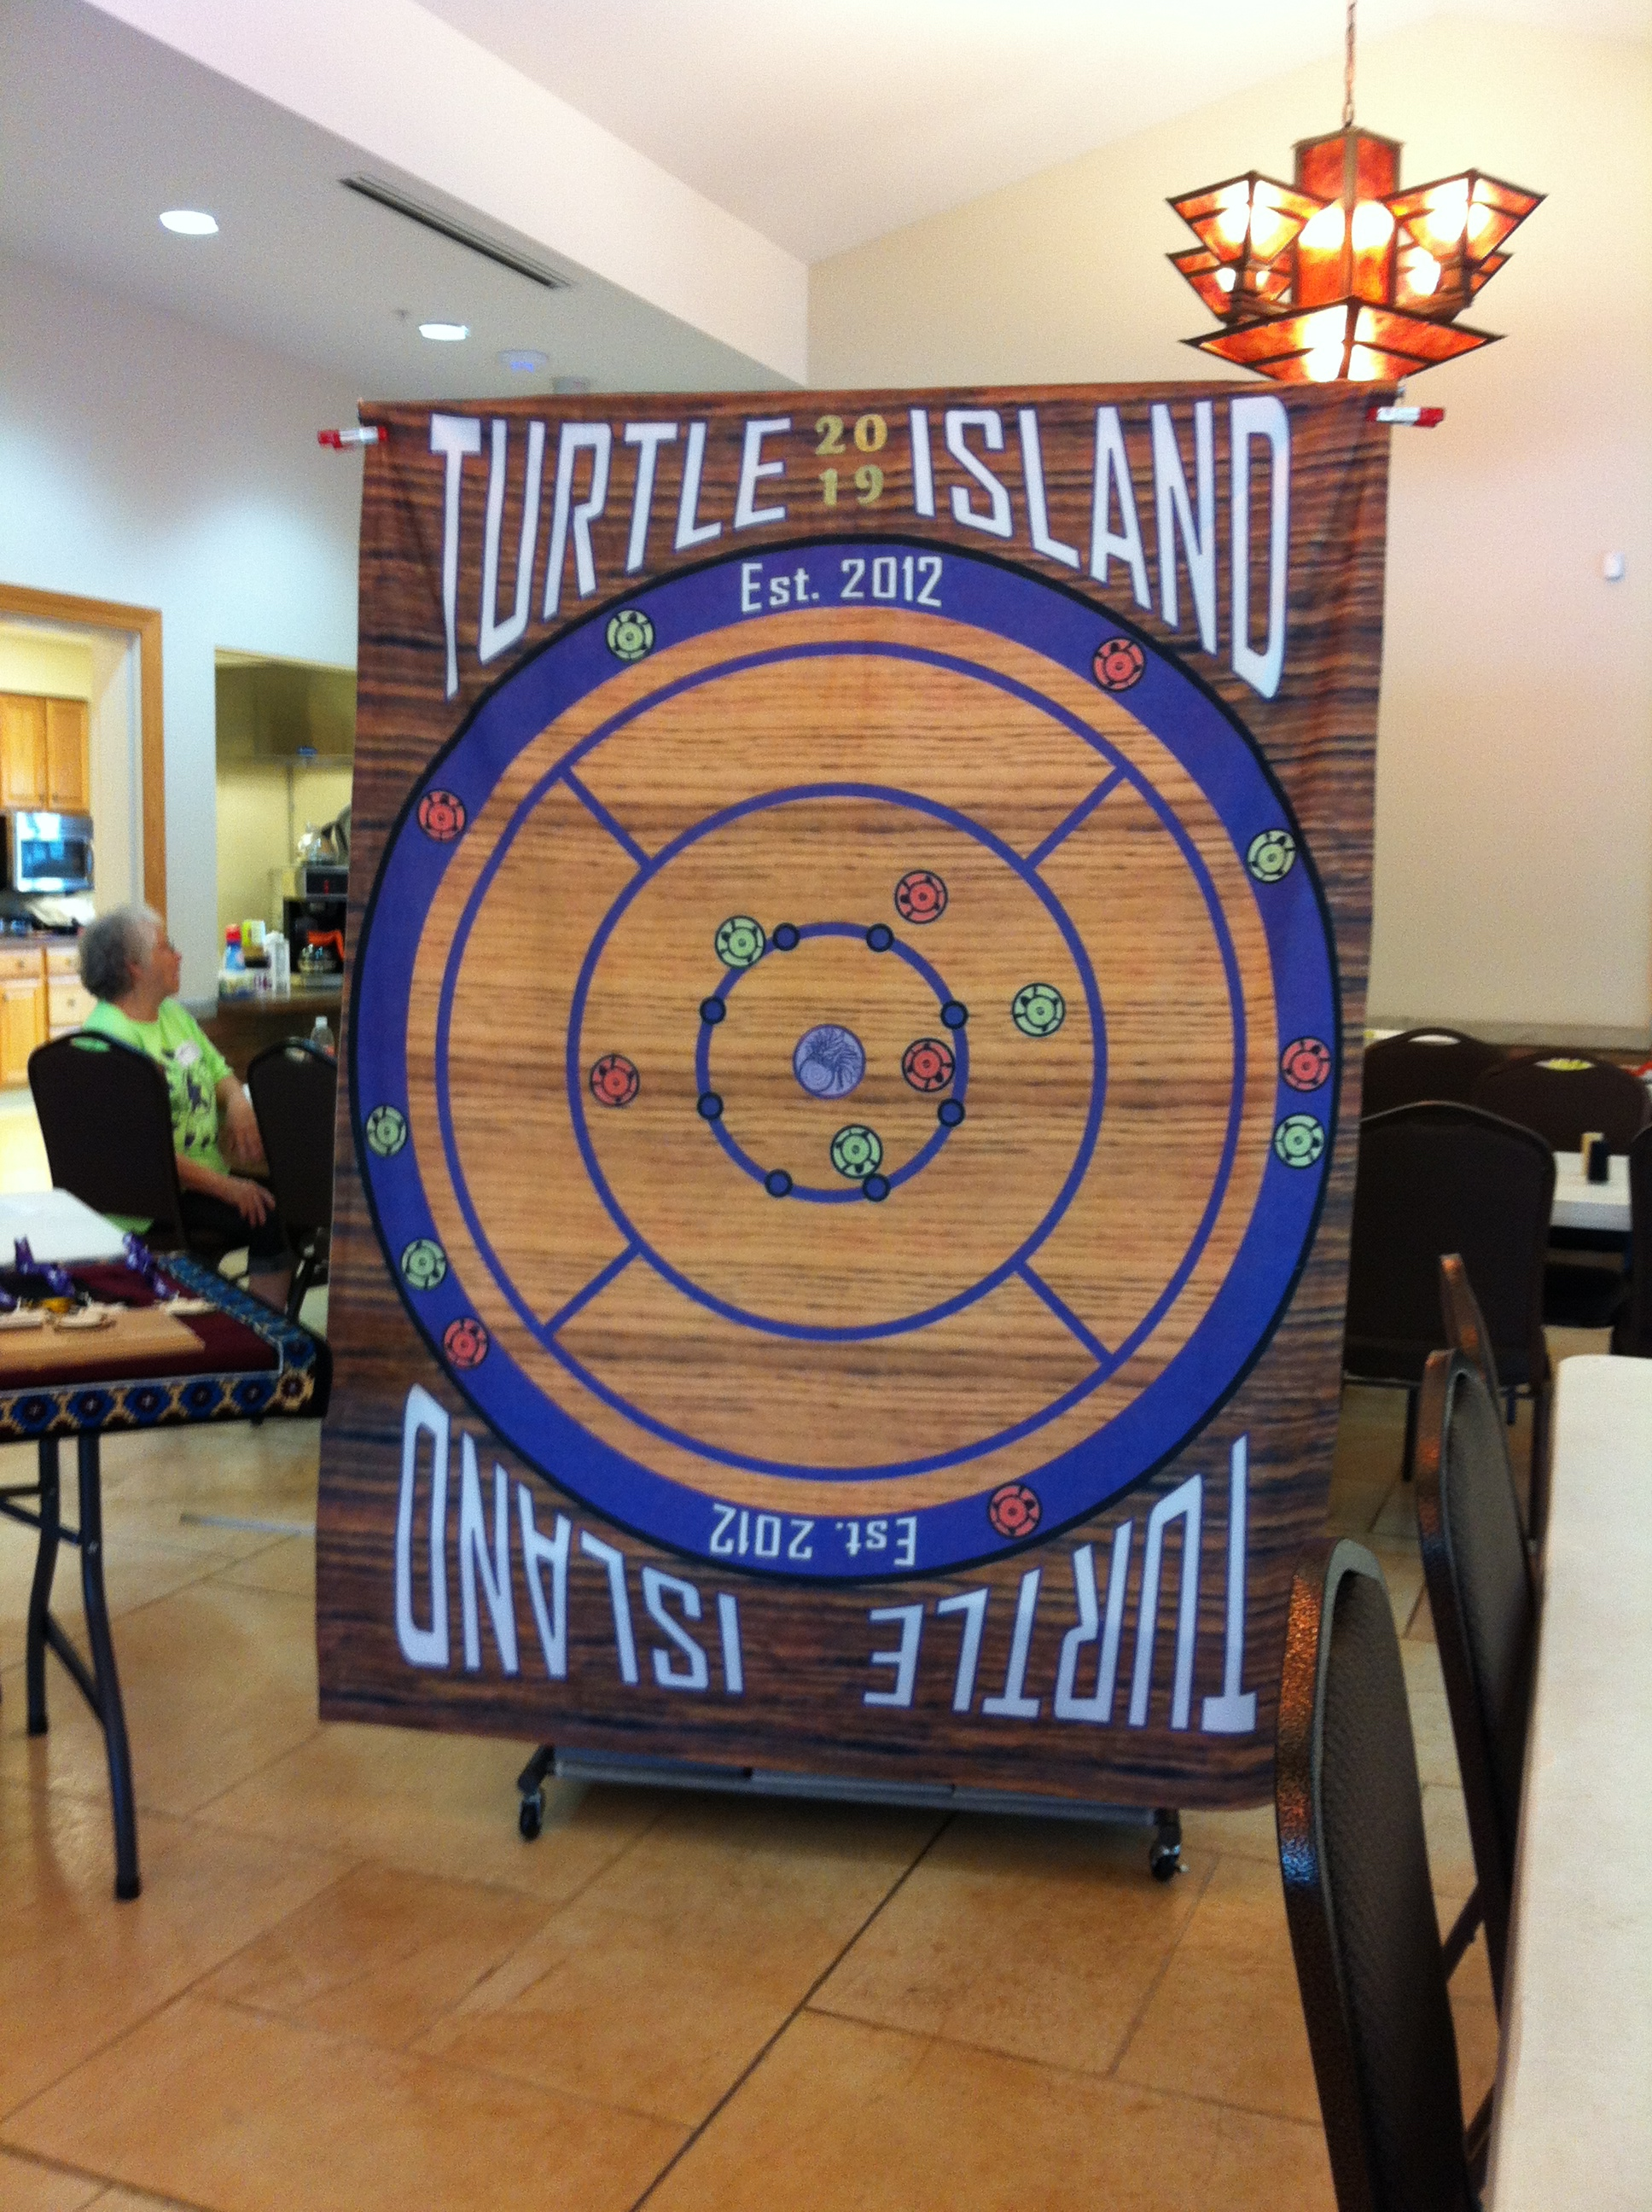 The custom designed awards backdrop for the Turtle Island event